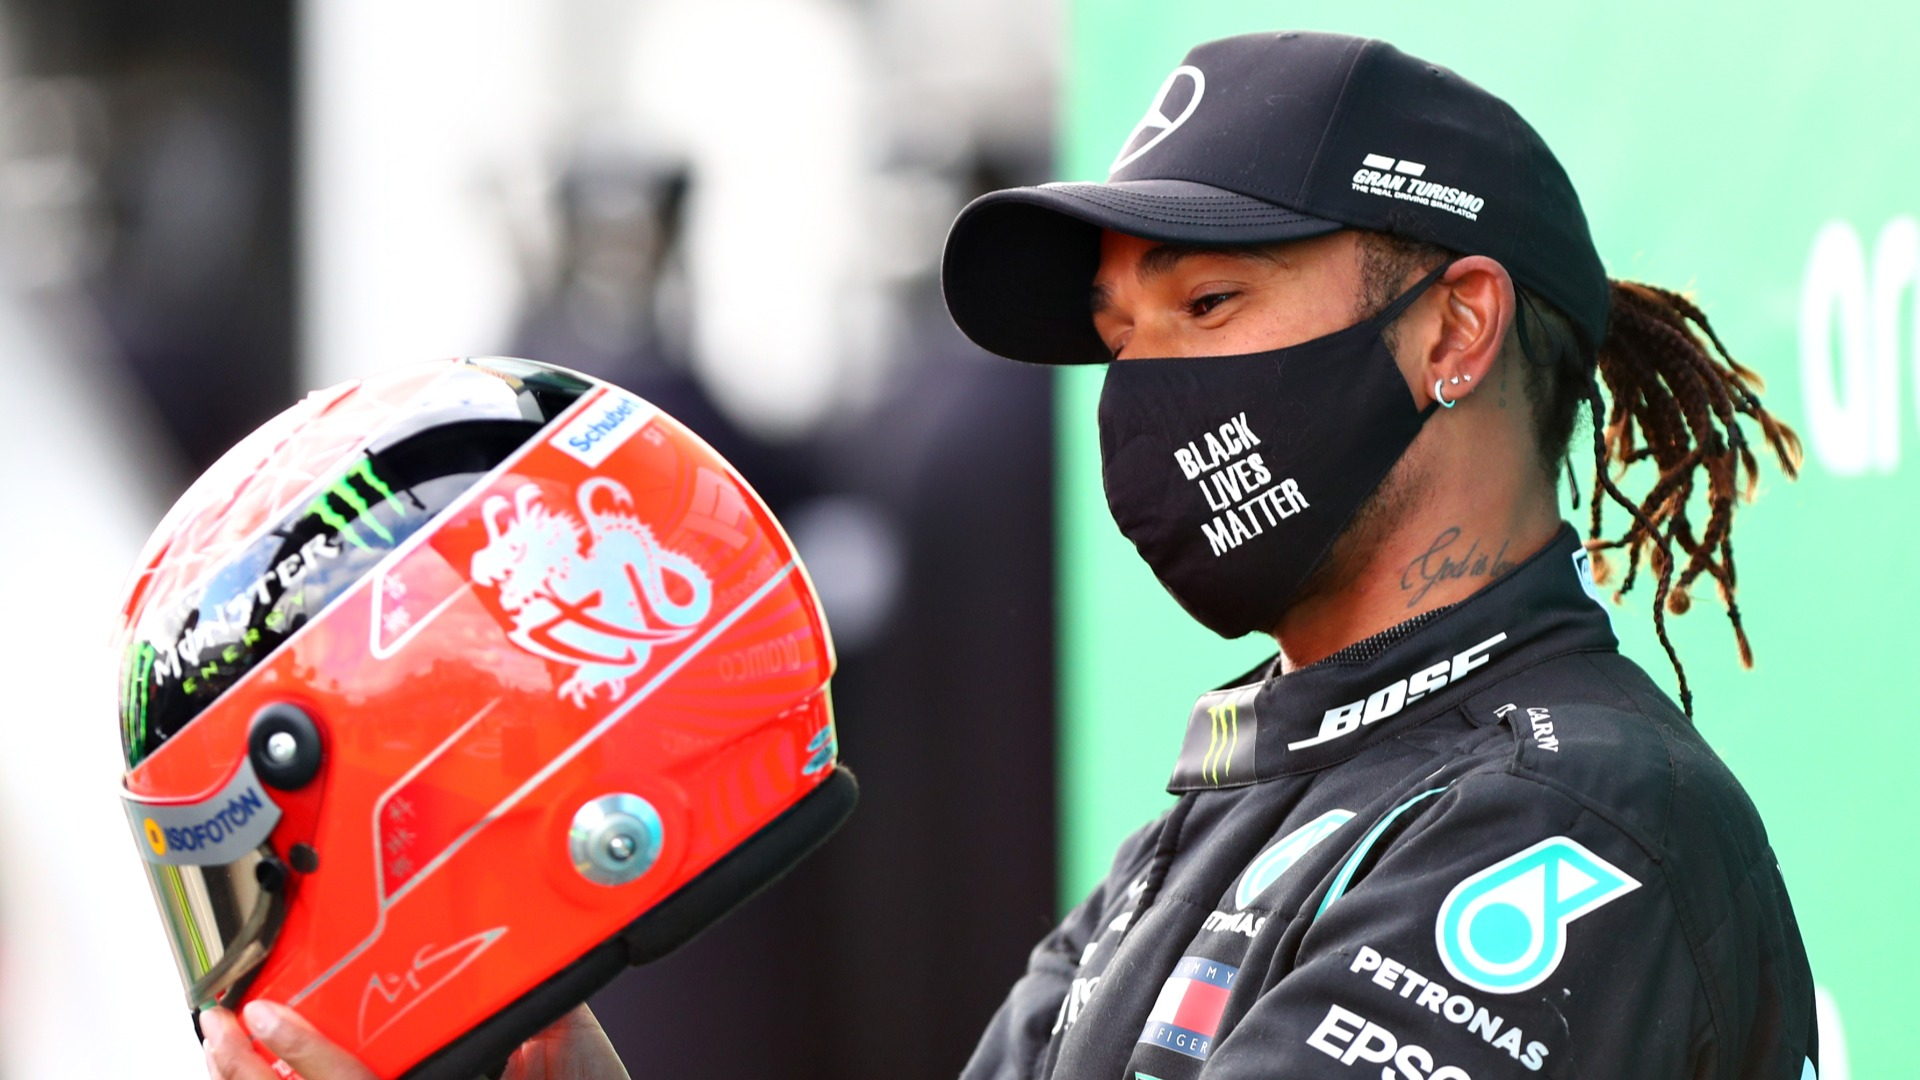 Hamilton's winning record in numbers - and the Schumacher benchmarks still to be beaten